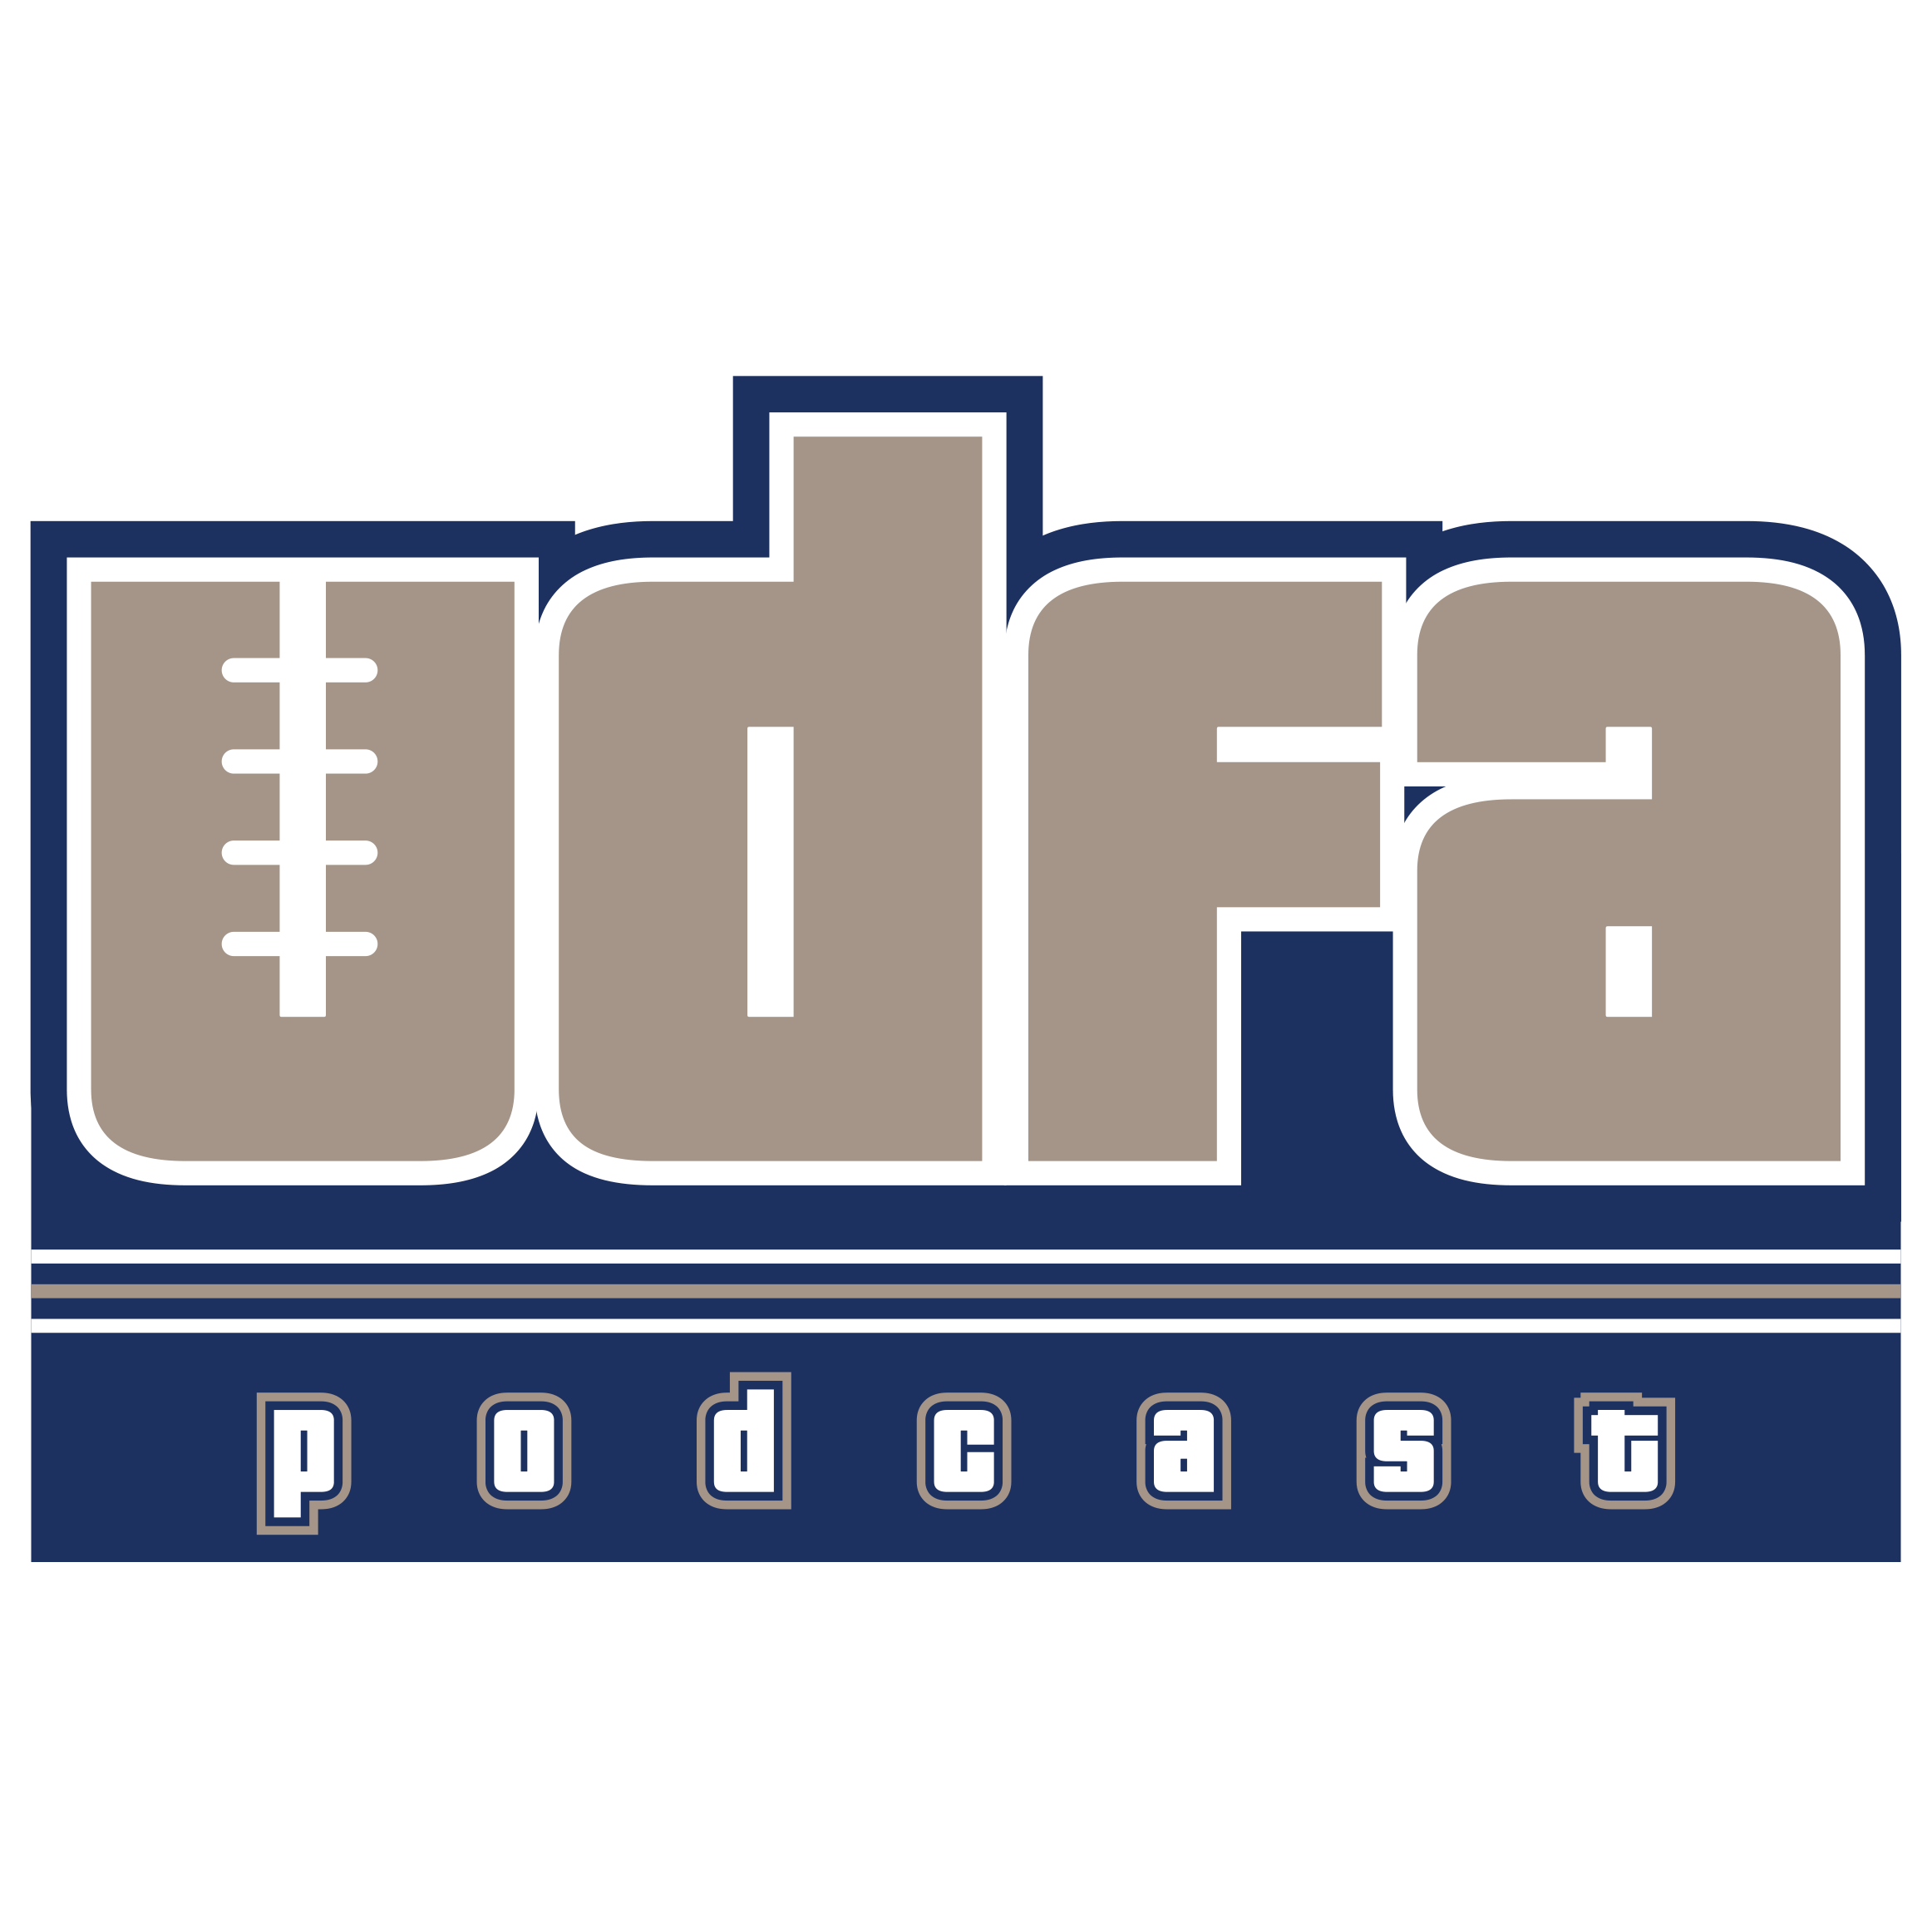 Undrafted Free Agents: An NFL Podcast